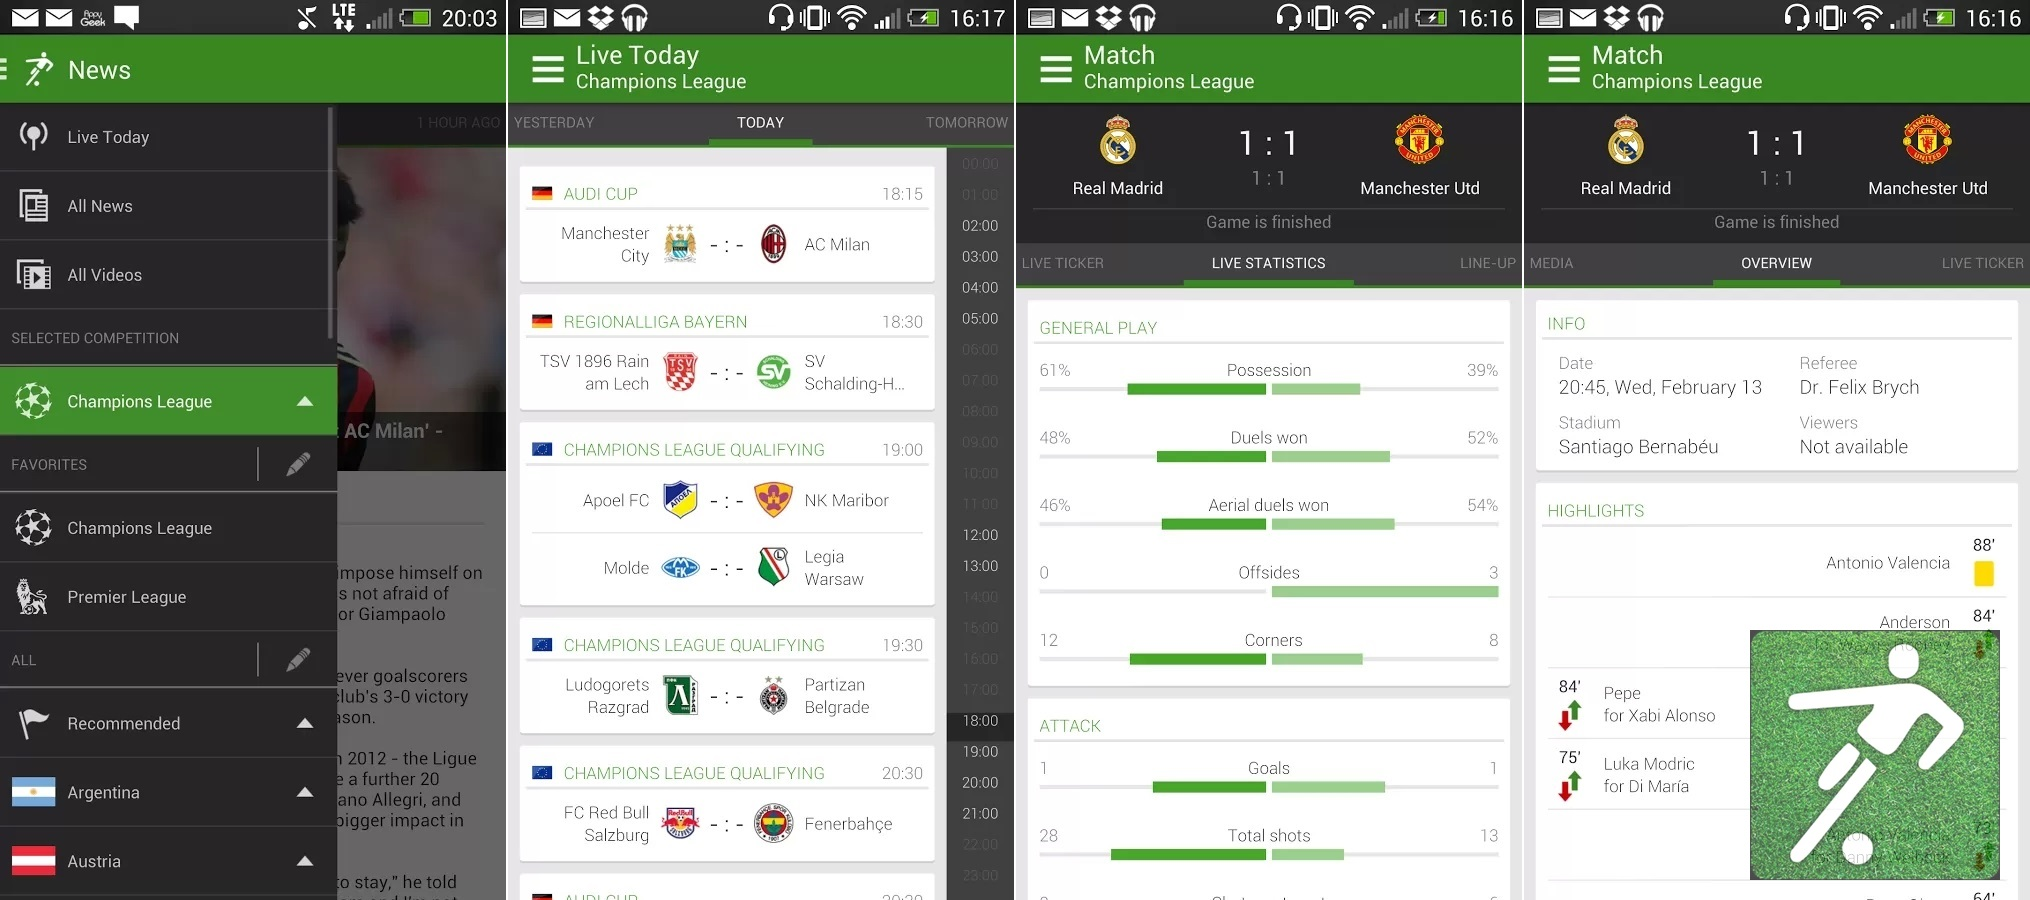 Best Android Apps To Check Live Football (Soccer) Scores